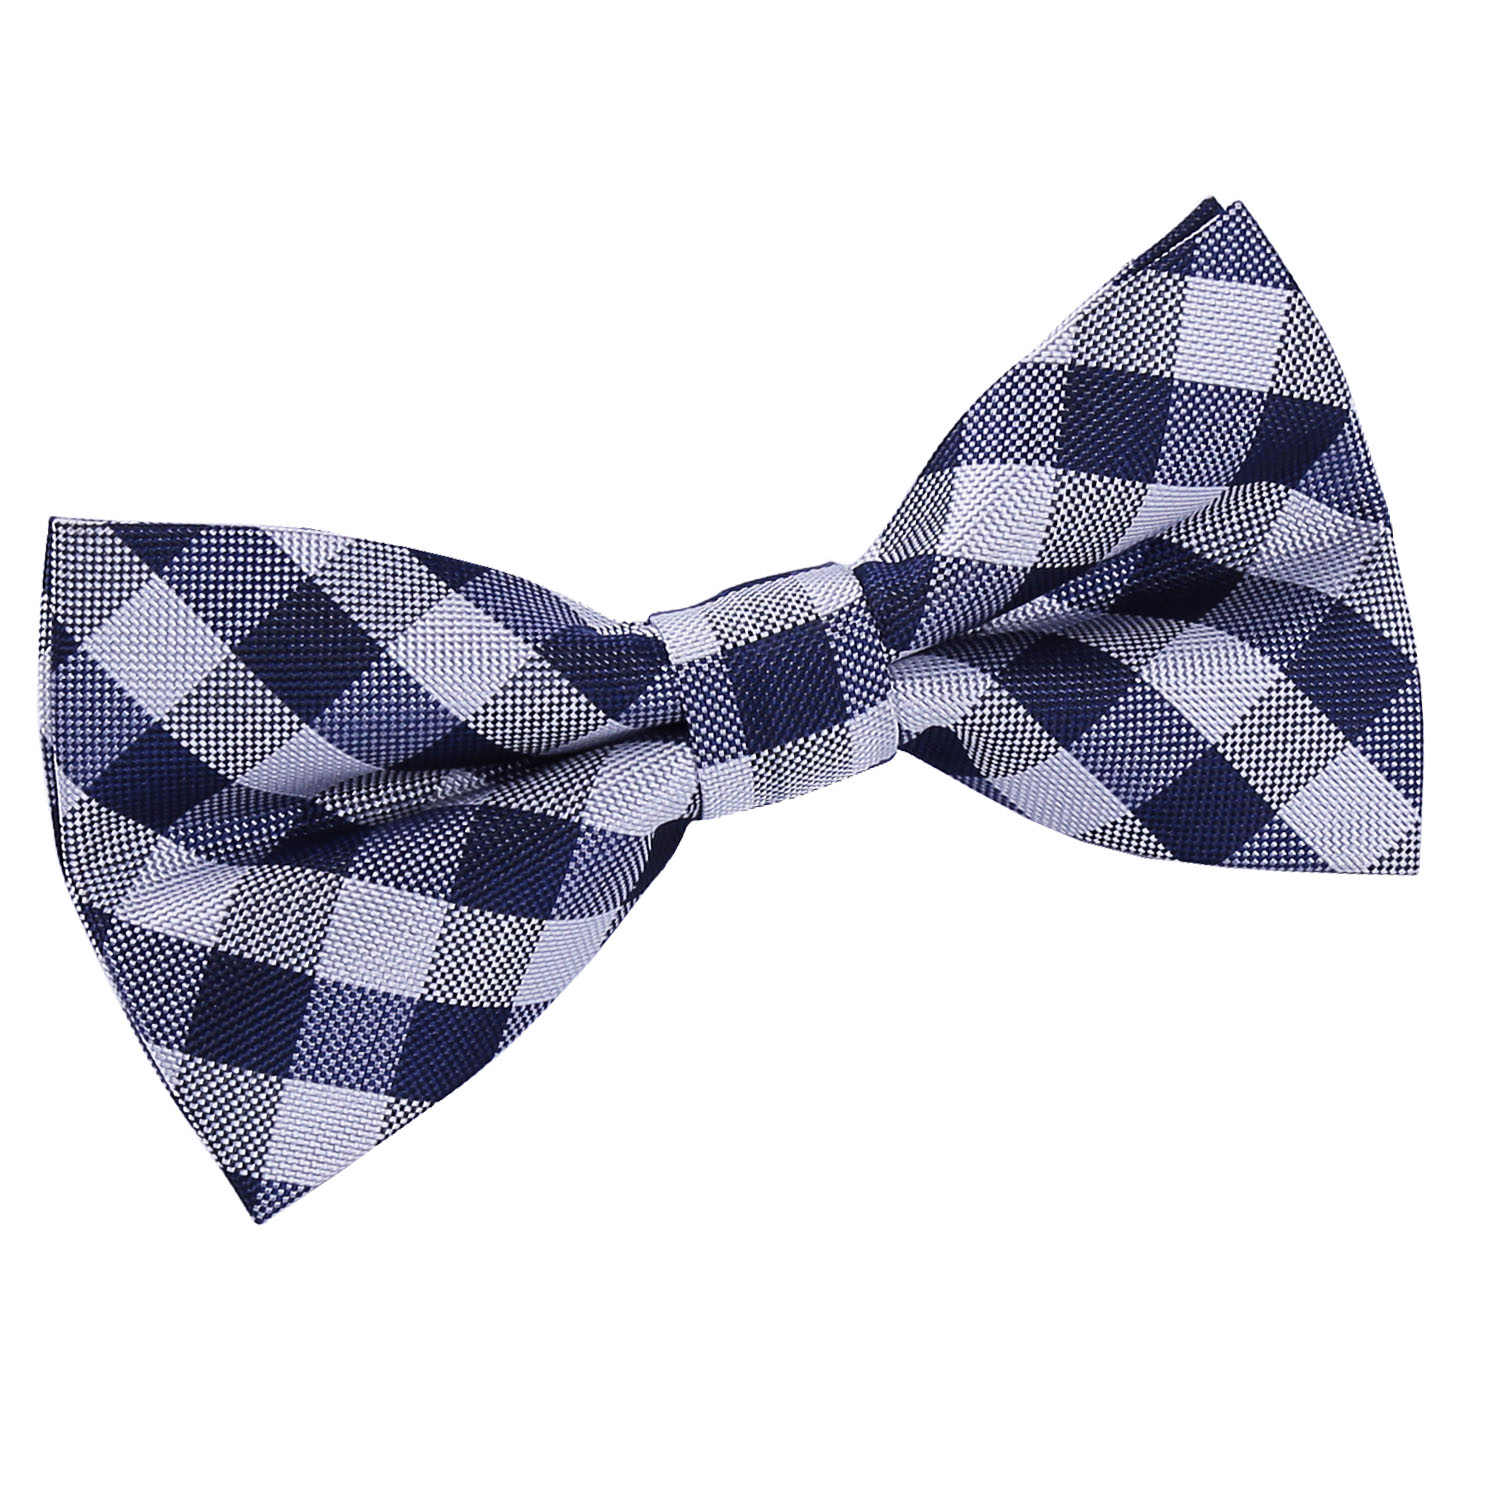 Enjoy free shipping and easy returns every day at Kohl's. Find great deals on Mens Bow Tie Ties at Kohl's today!